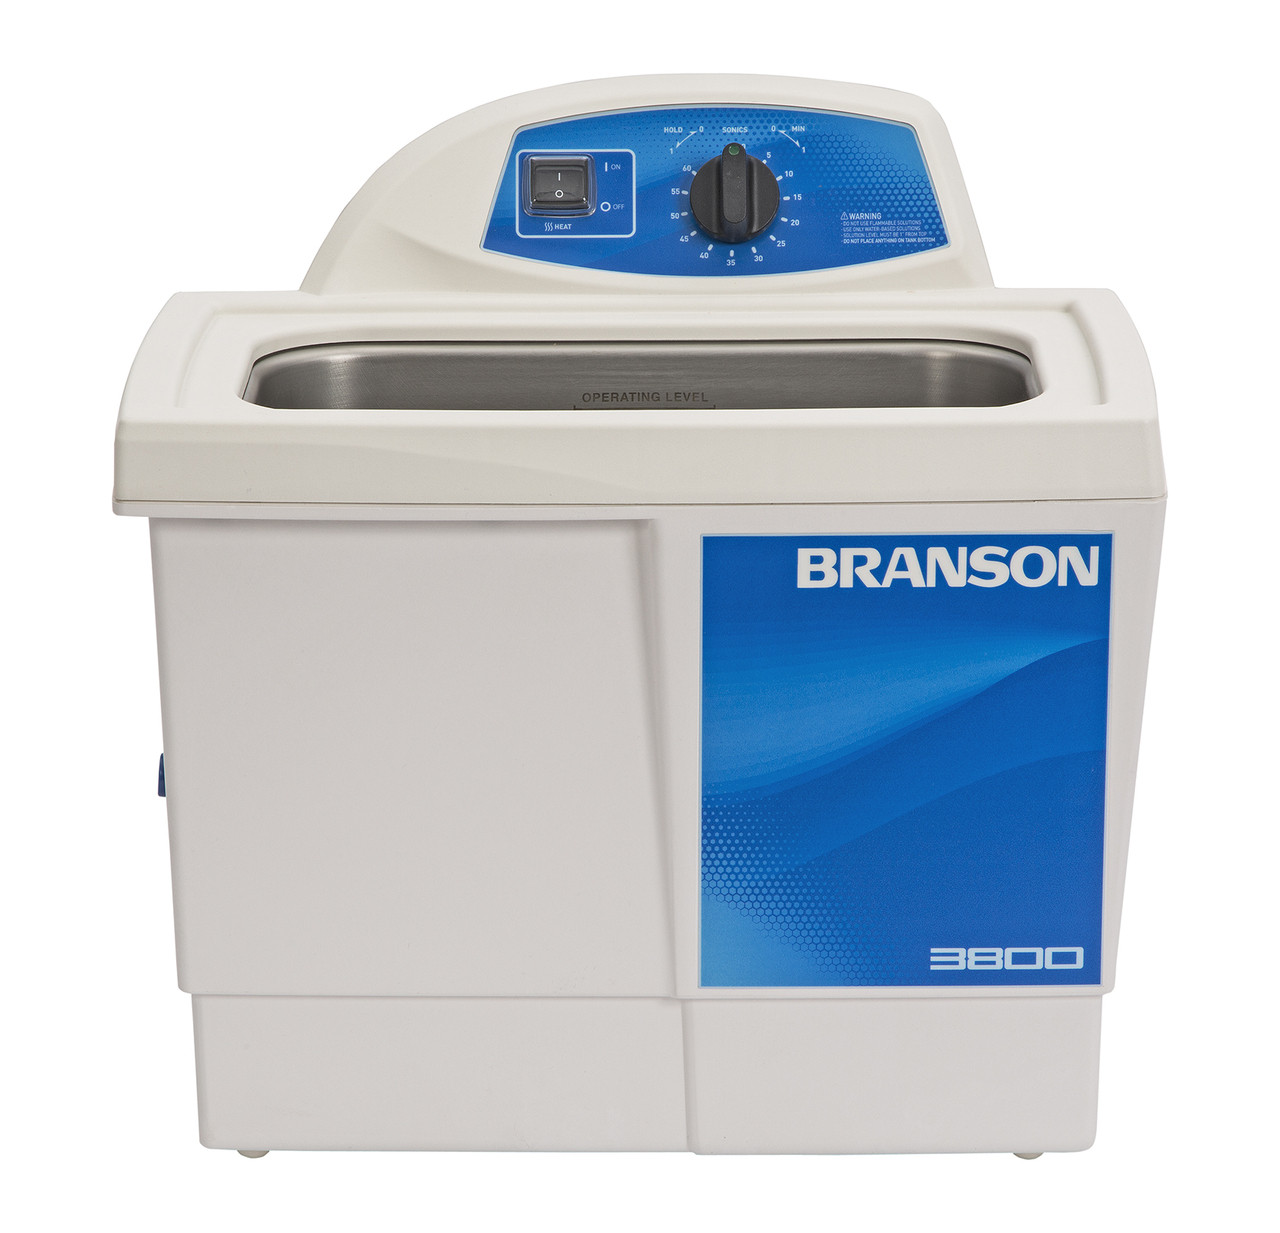 Branson M3800H Ultrasonic Cleaner